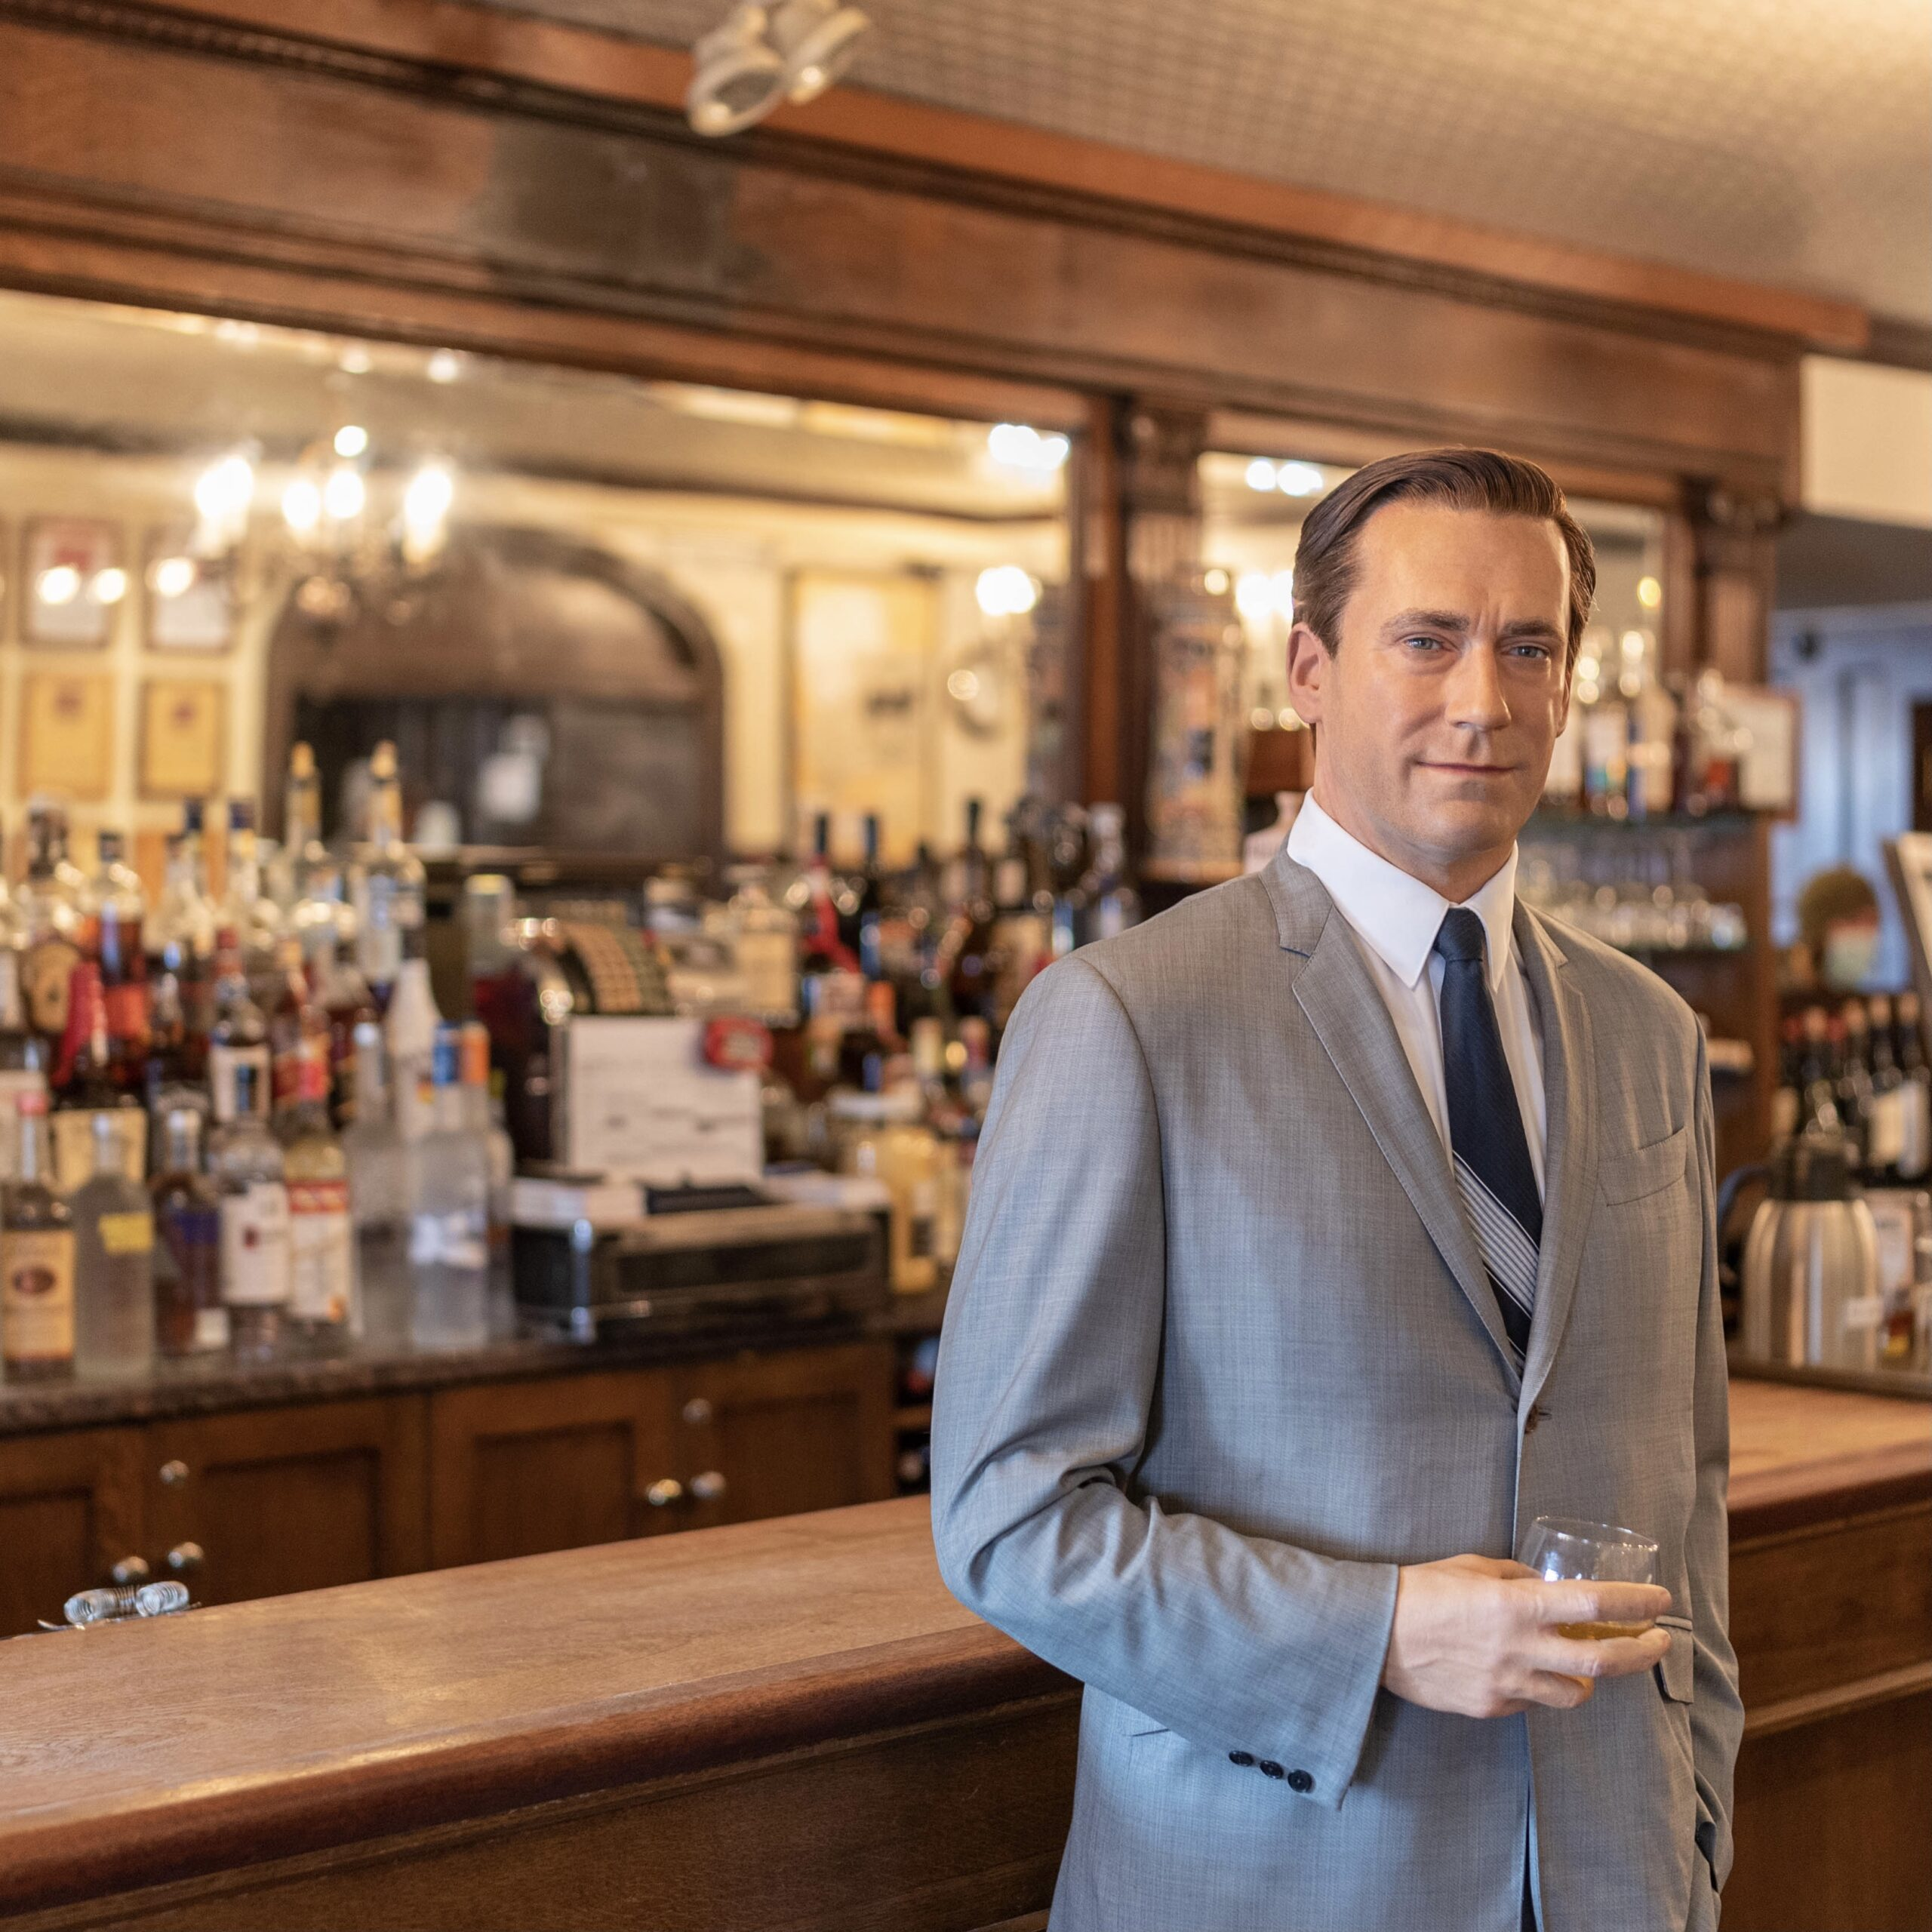 Jon Hamm by Peter Luger Steakhouse & Madame Tussauds for 360 Magazine